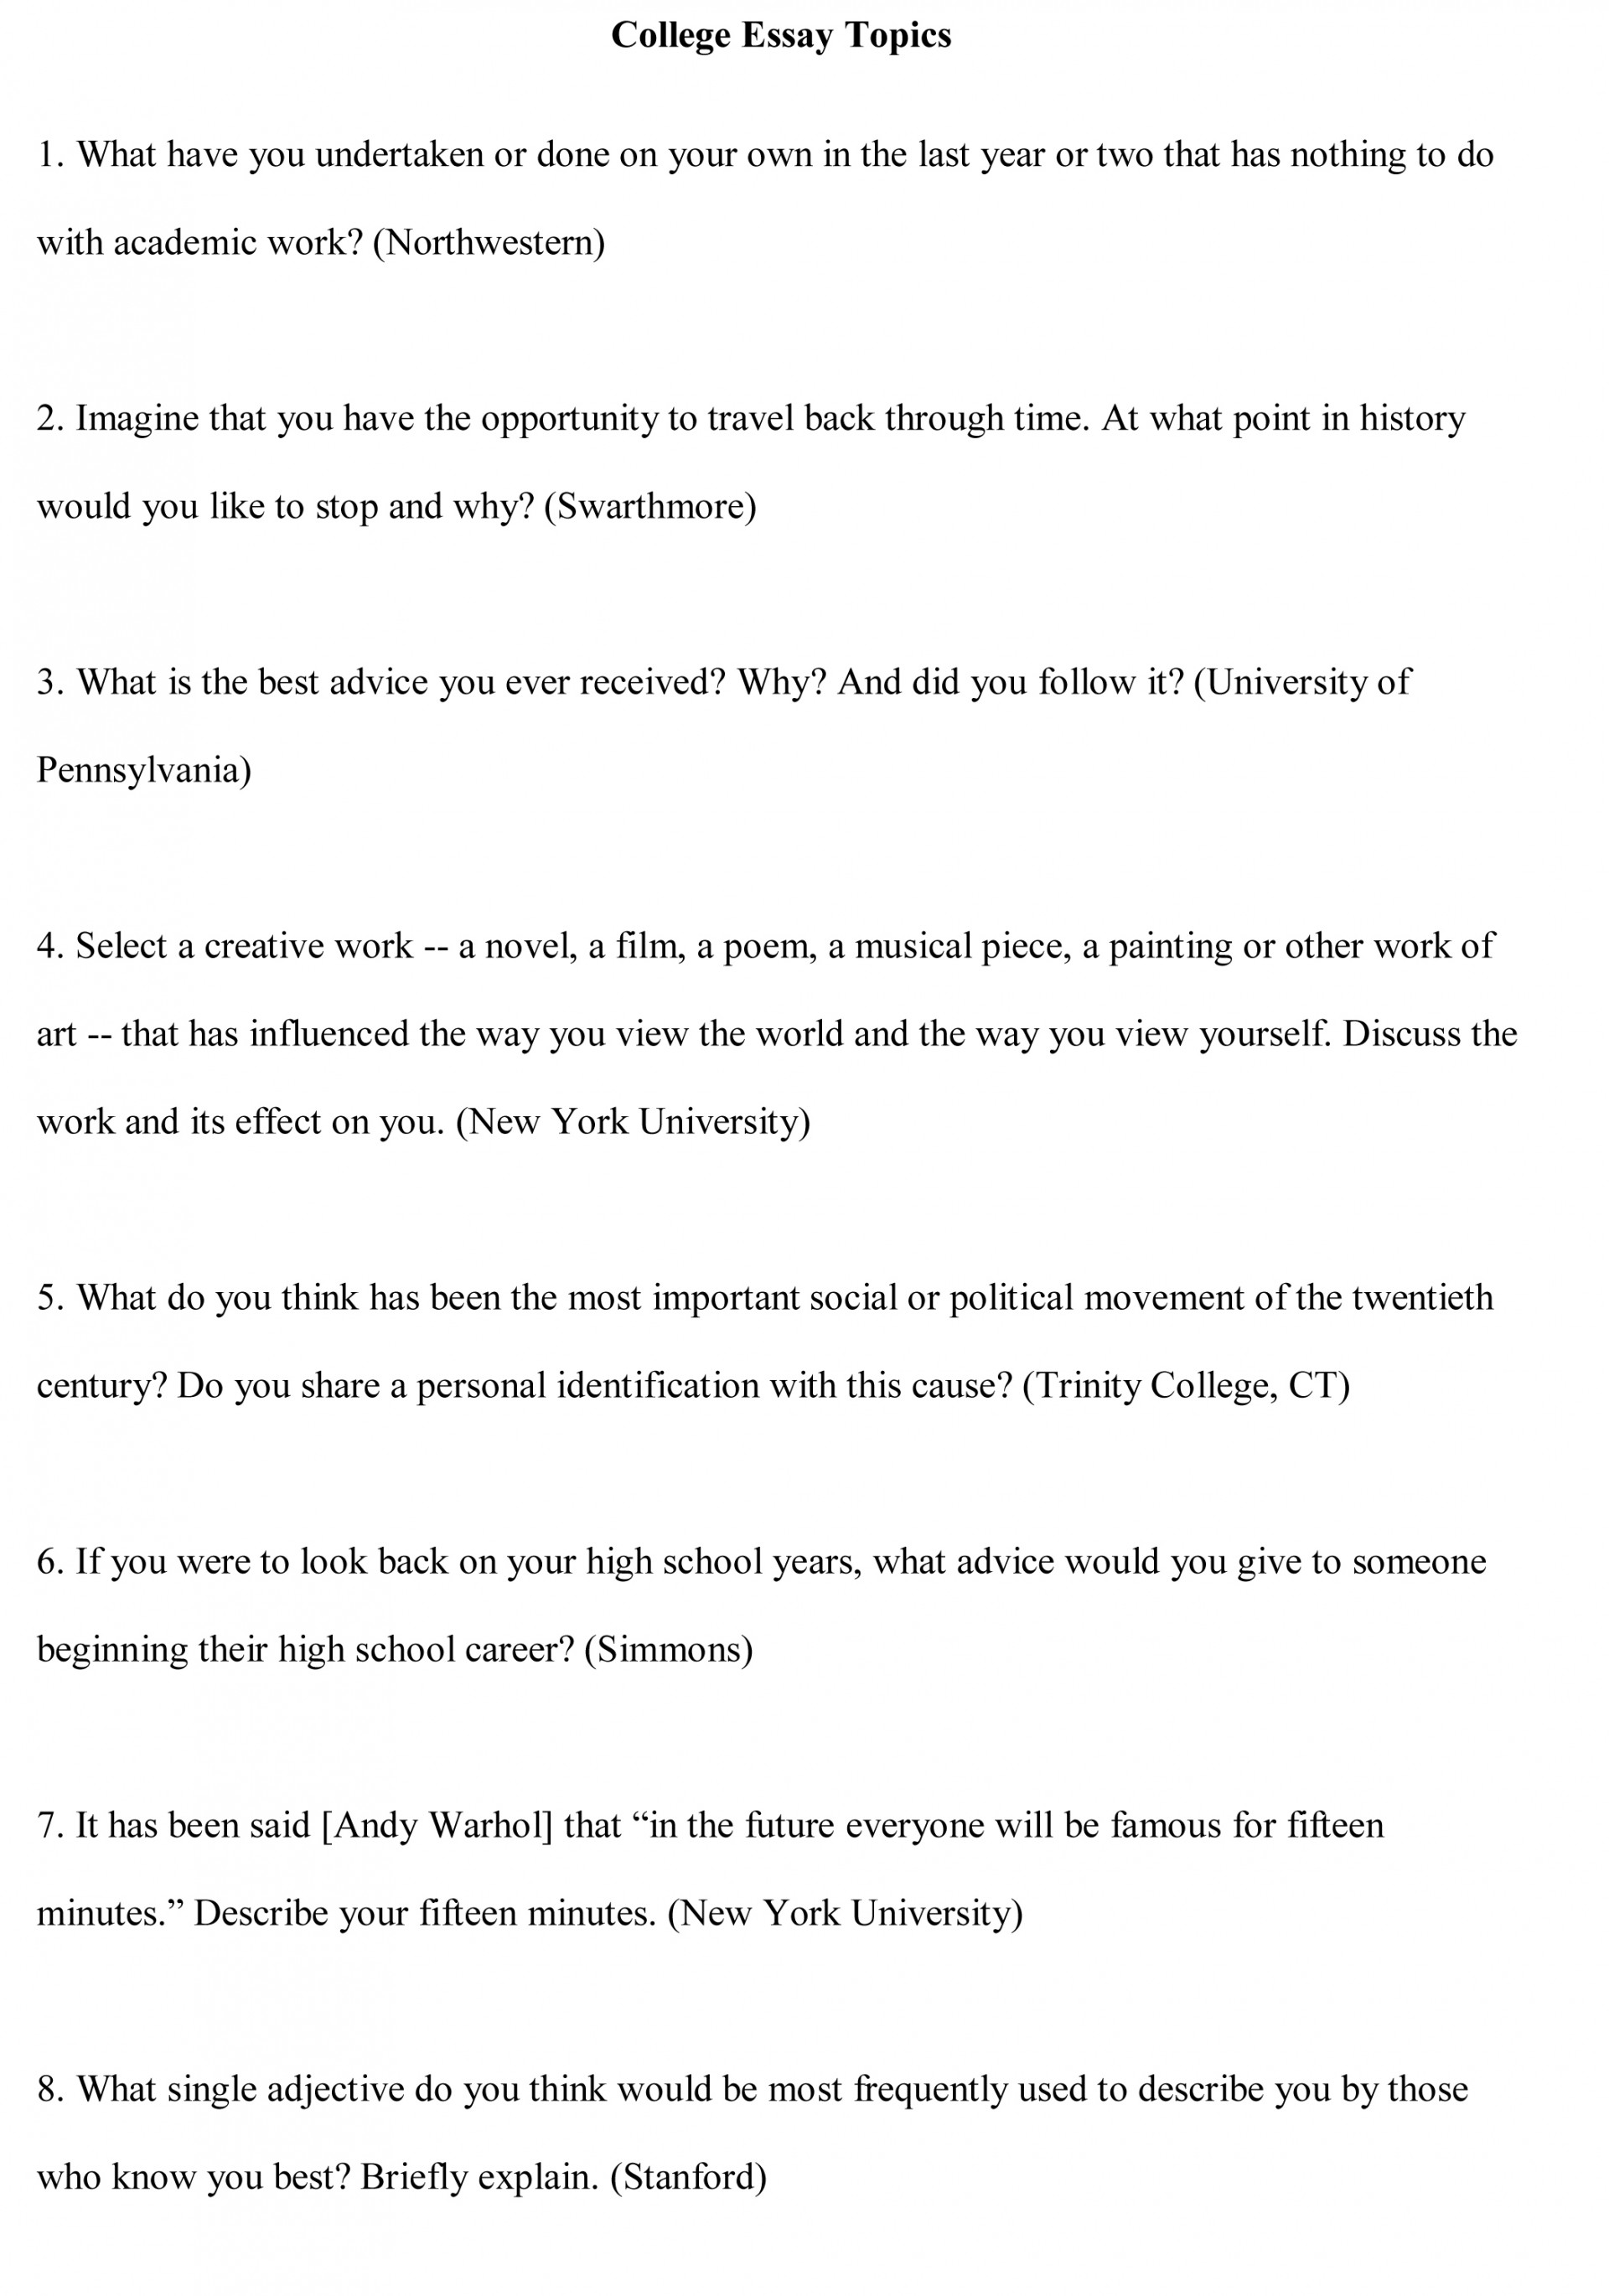 023 Free Essay Generator College Topics Sample1 Impressive Reddit No Sign Up 1920